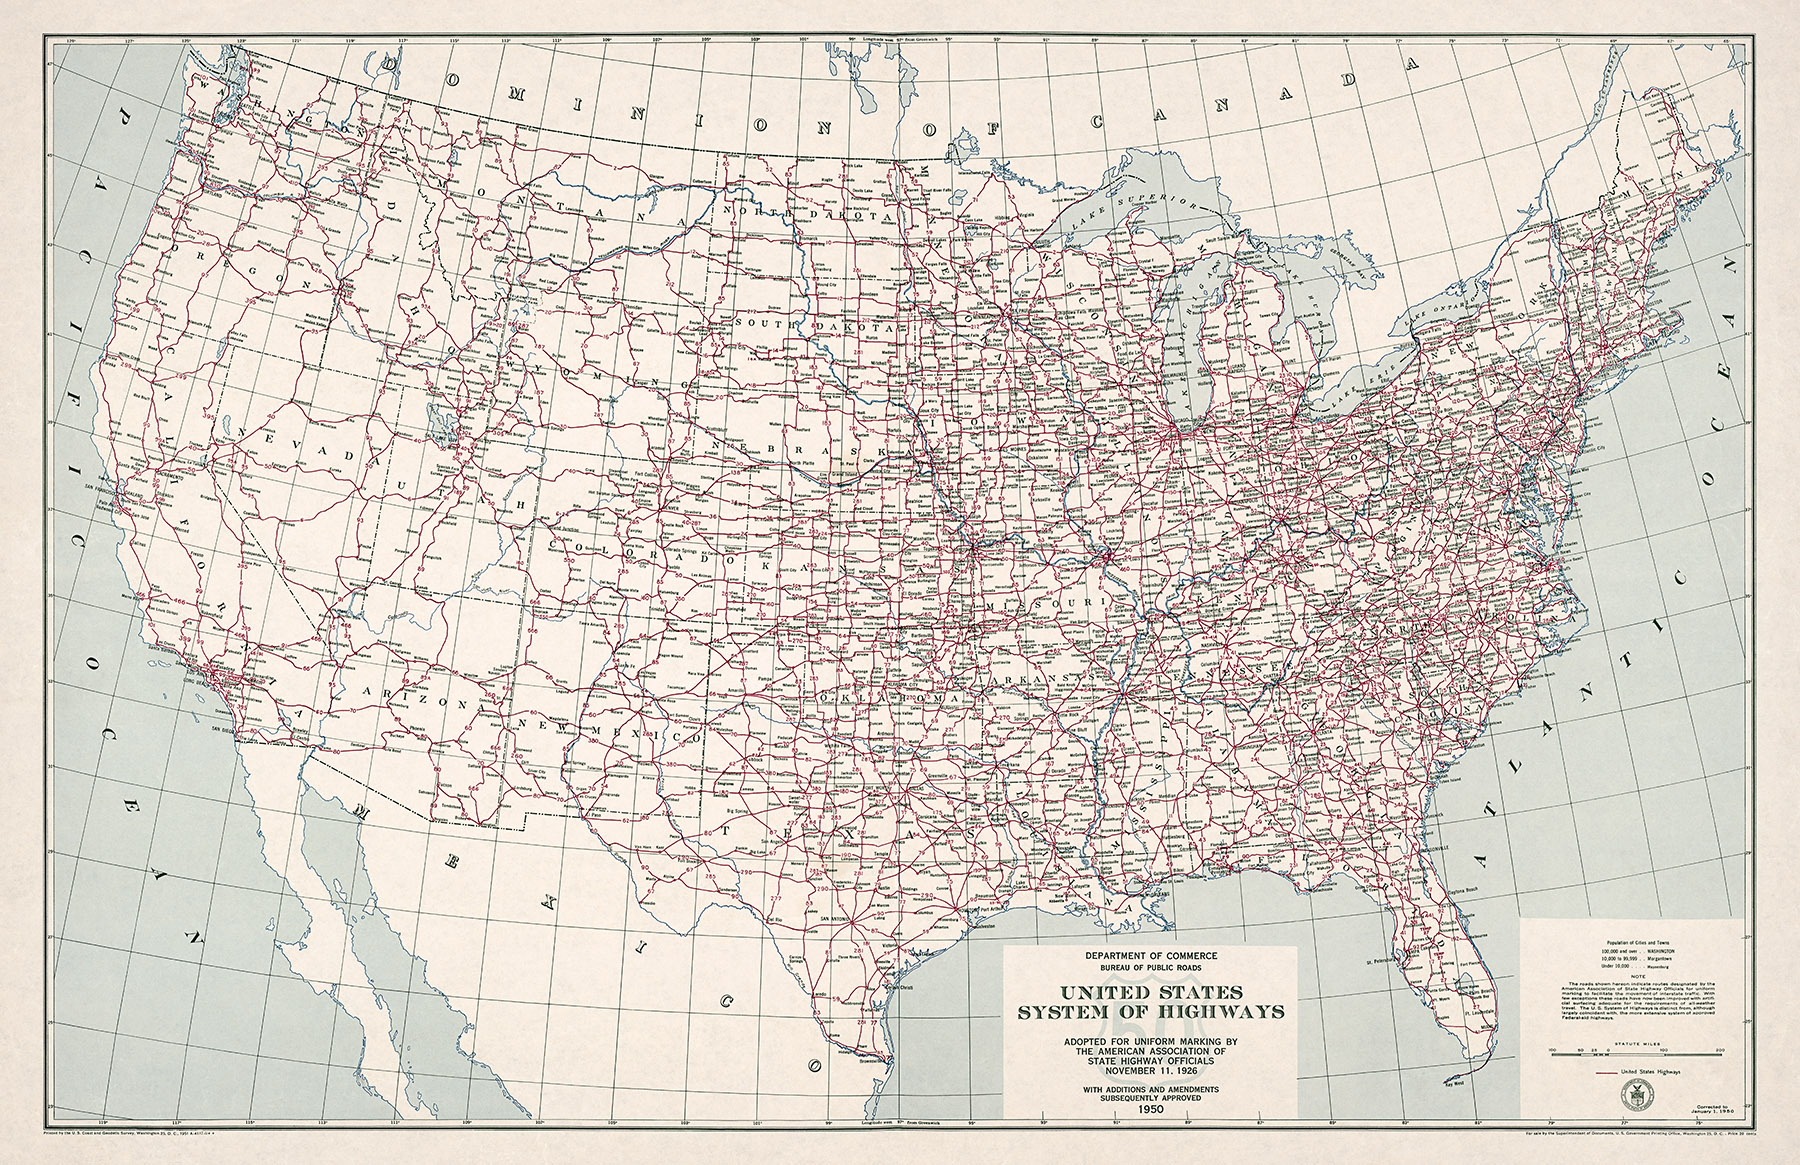 1950 U.S. Highway System Map